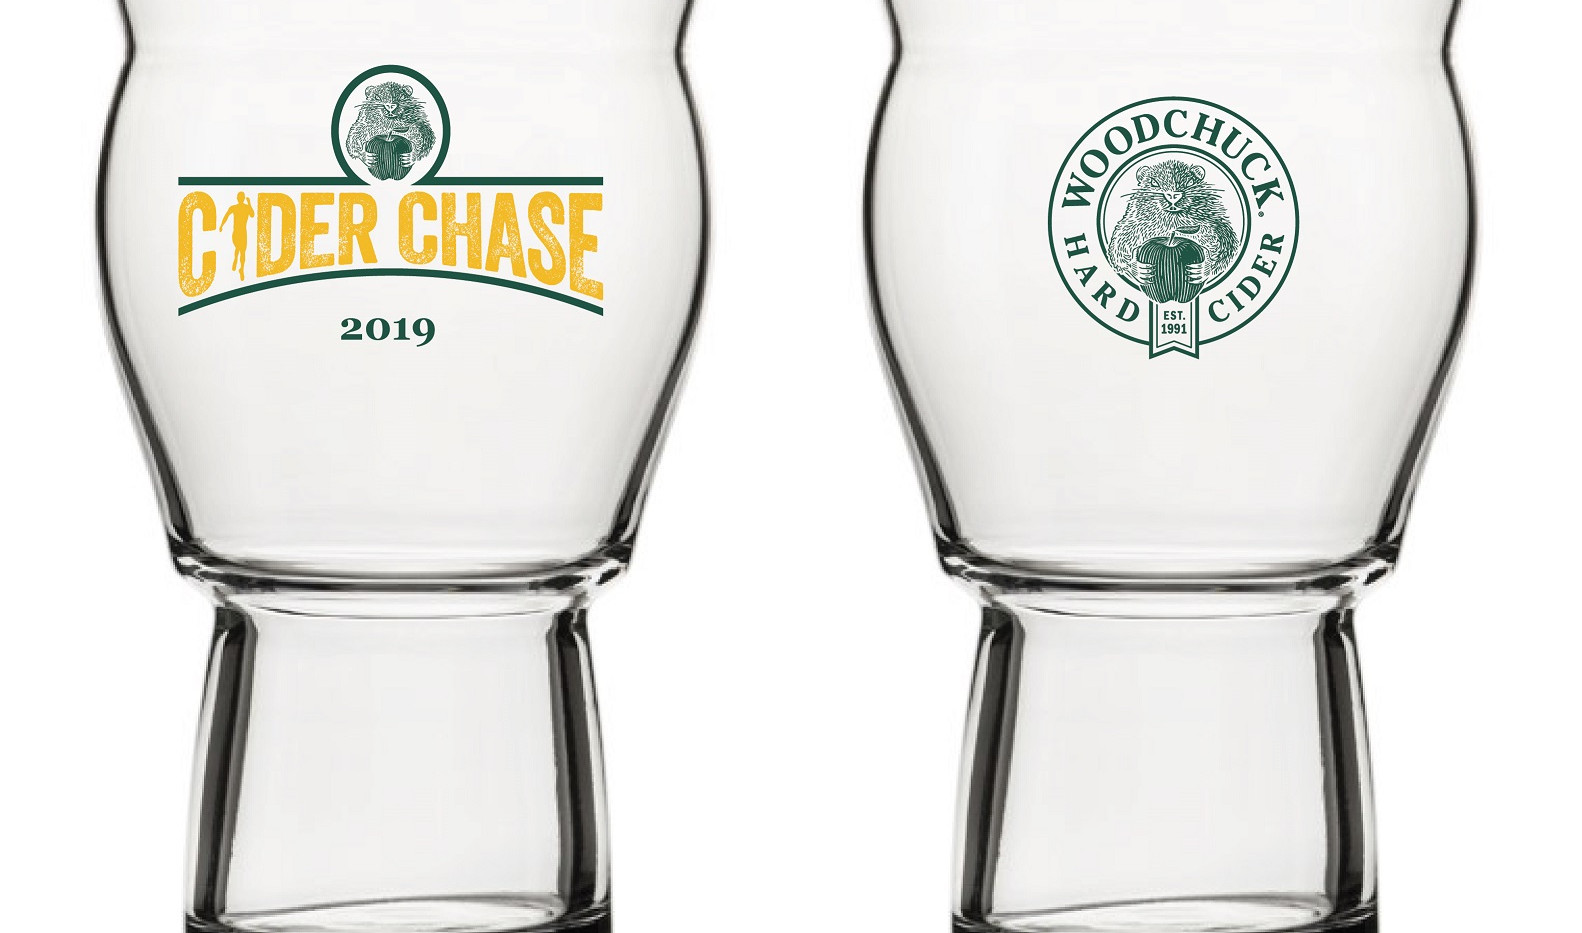 Cider Chase Glass 2019_Draft.jpg